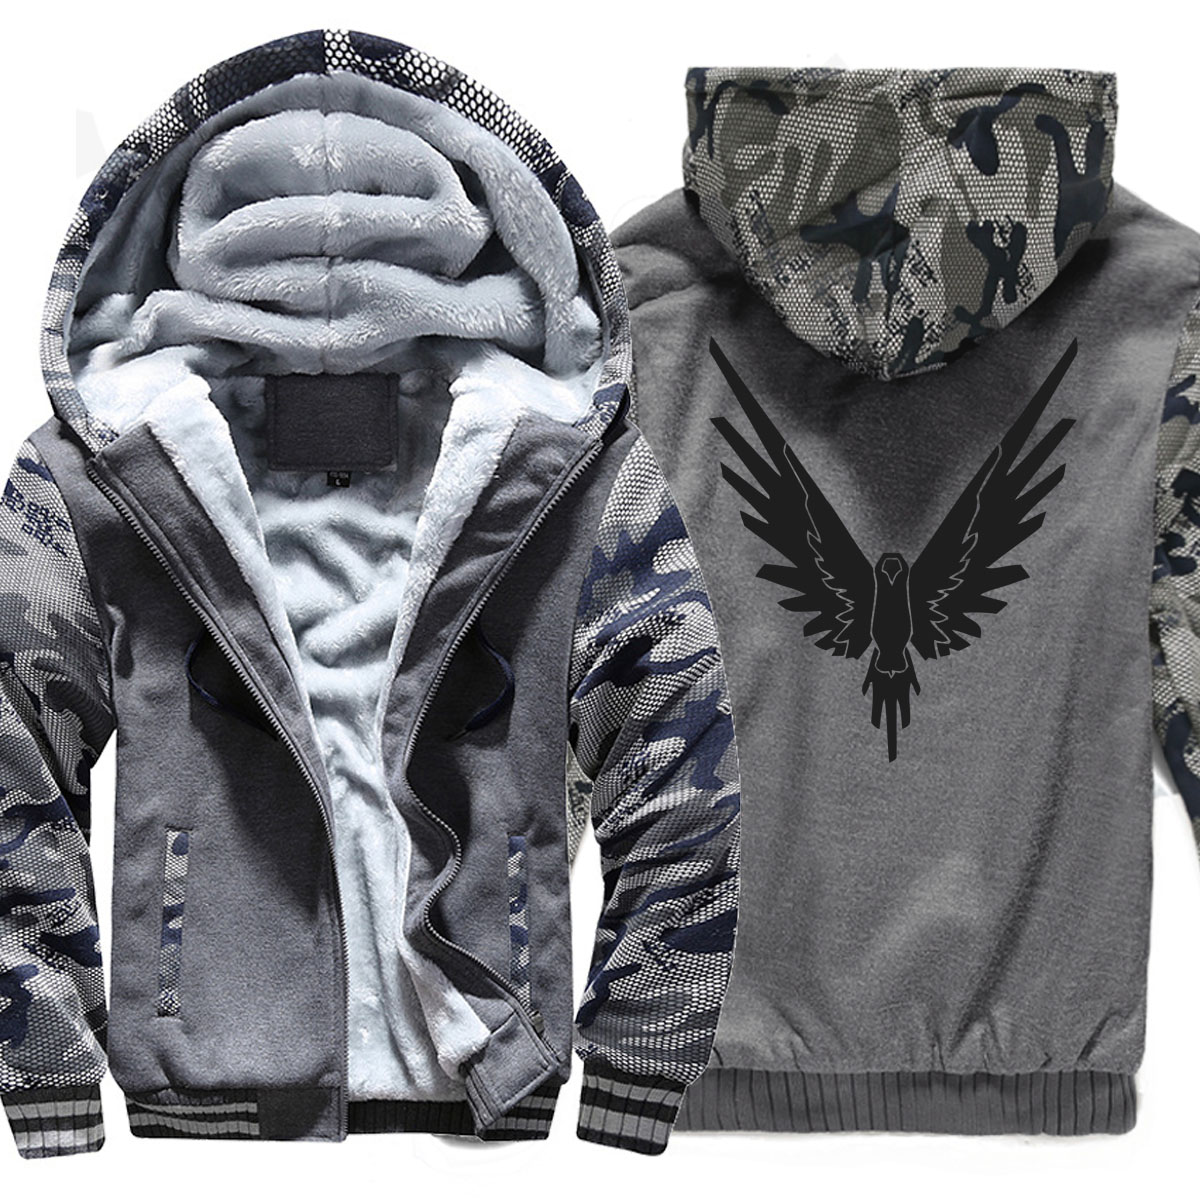 Male Brand clothing Large size velvet hip hop Casual Outwear Coat for Men Urban Class Warm camo jacket Masculino winter jacket